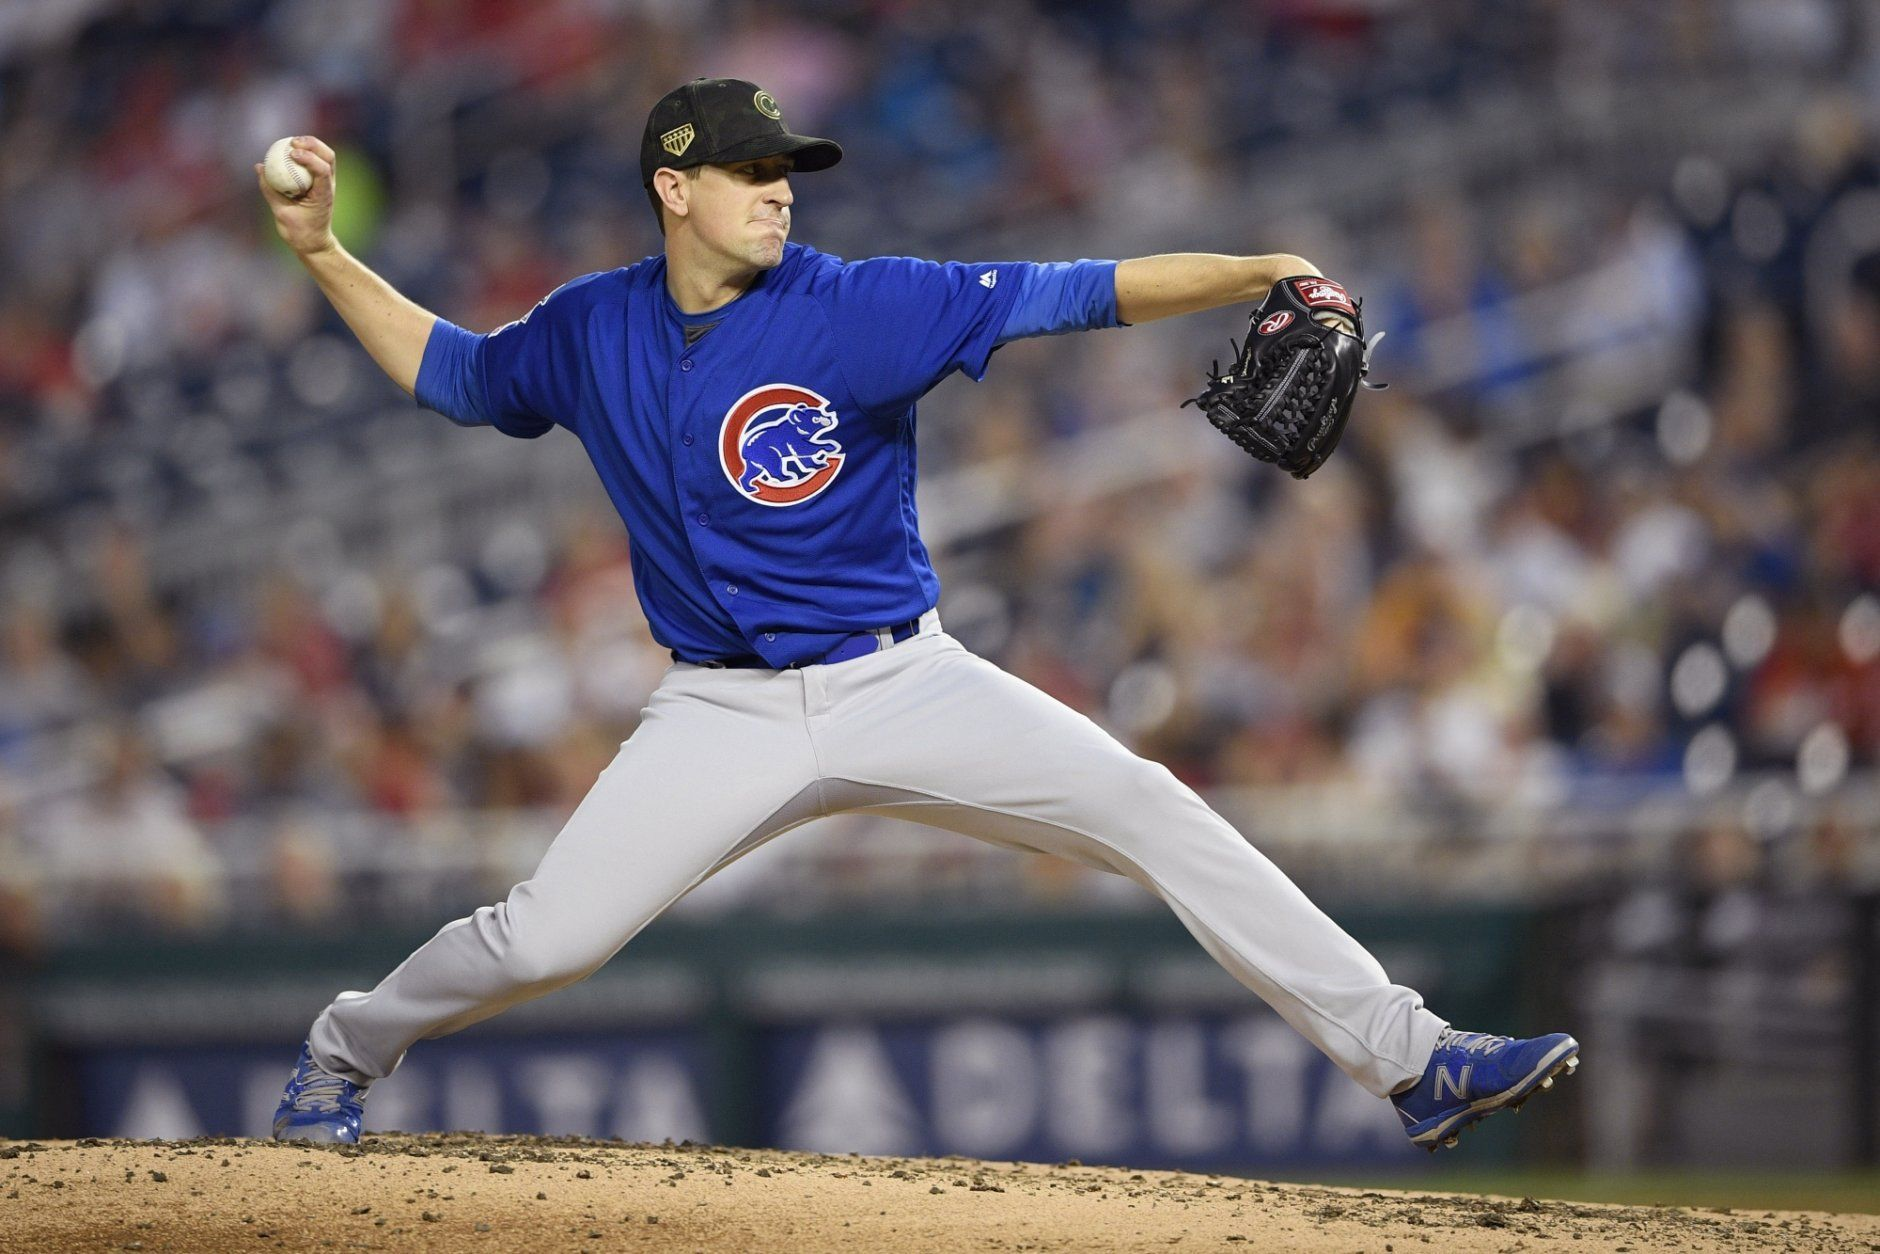 Chicago Cubs starting pitcher Kyle Hendricks delivers during the fourth inning of a baseball game against the Washington Nationals, Sunday, May 19, 2019, in Washington. (AP Photo/Nick Wass)